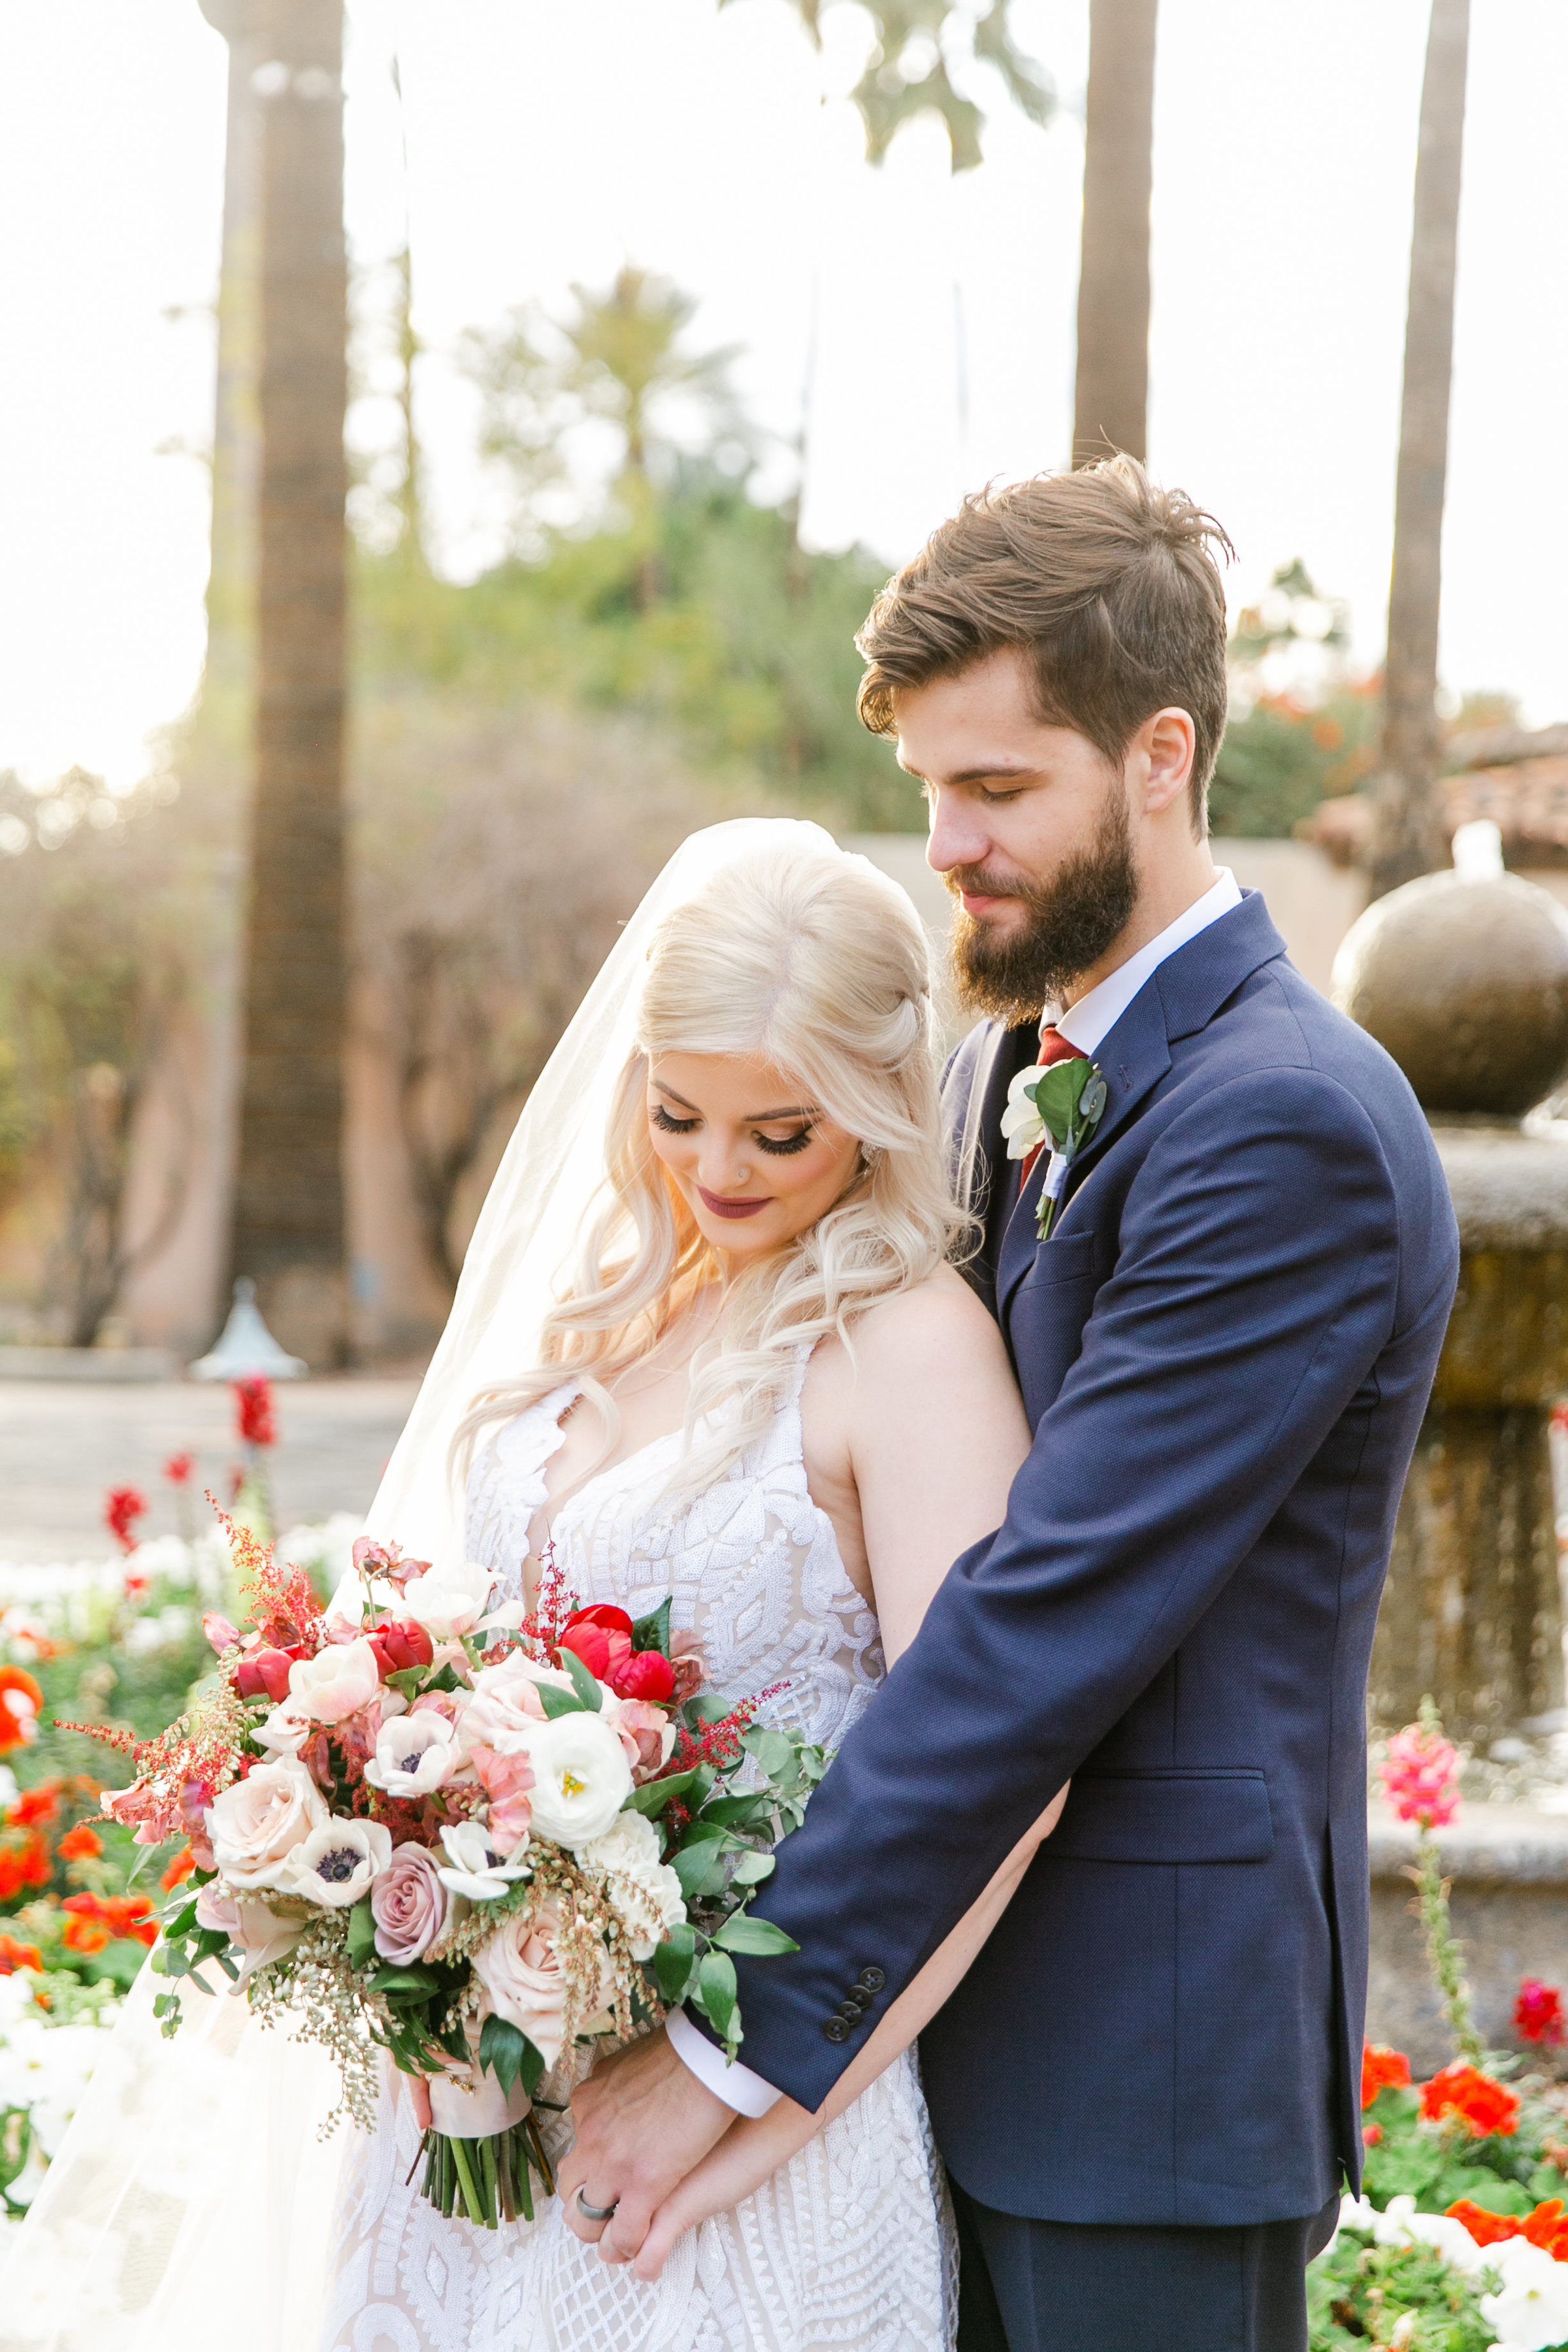 Karlie Colleen Photography - The Royal Palms Wedding - Some Like It Classic - Alex & Sam-542